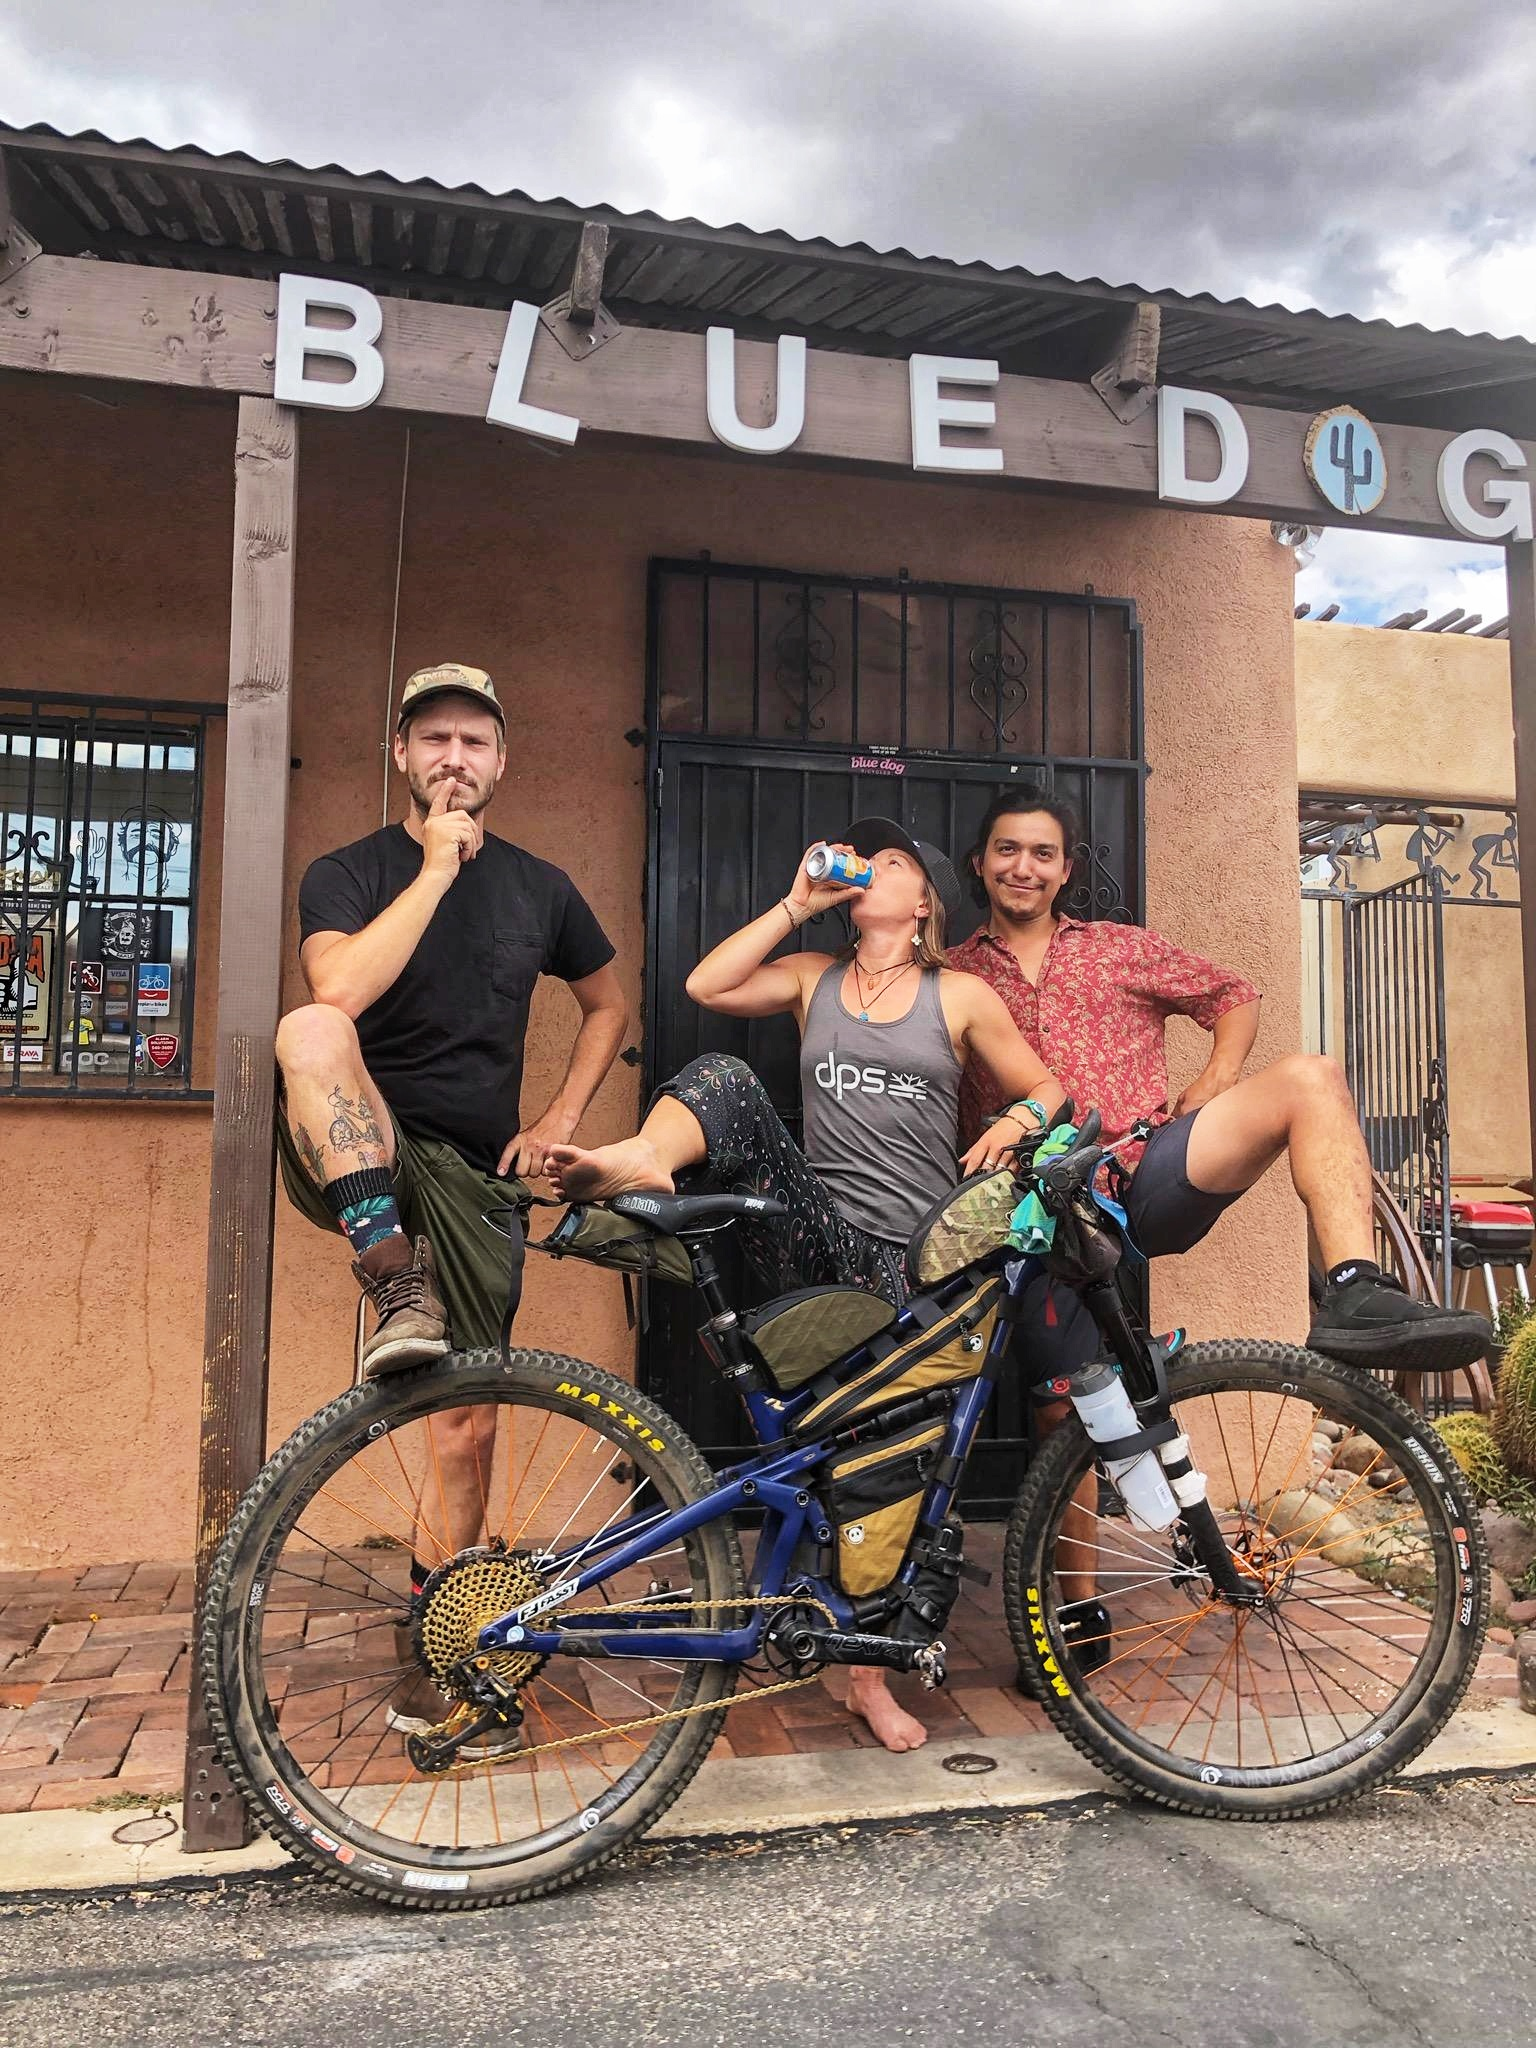 I showed up, in Tucson, back to my regular goofy self. Shenanigans with Nate and Jesse outside Blue Dog Bicycles. T minus one day until the AZTR start!